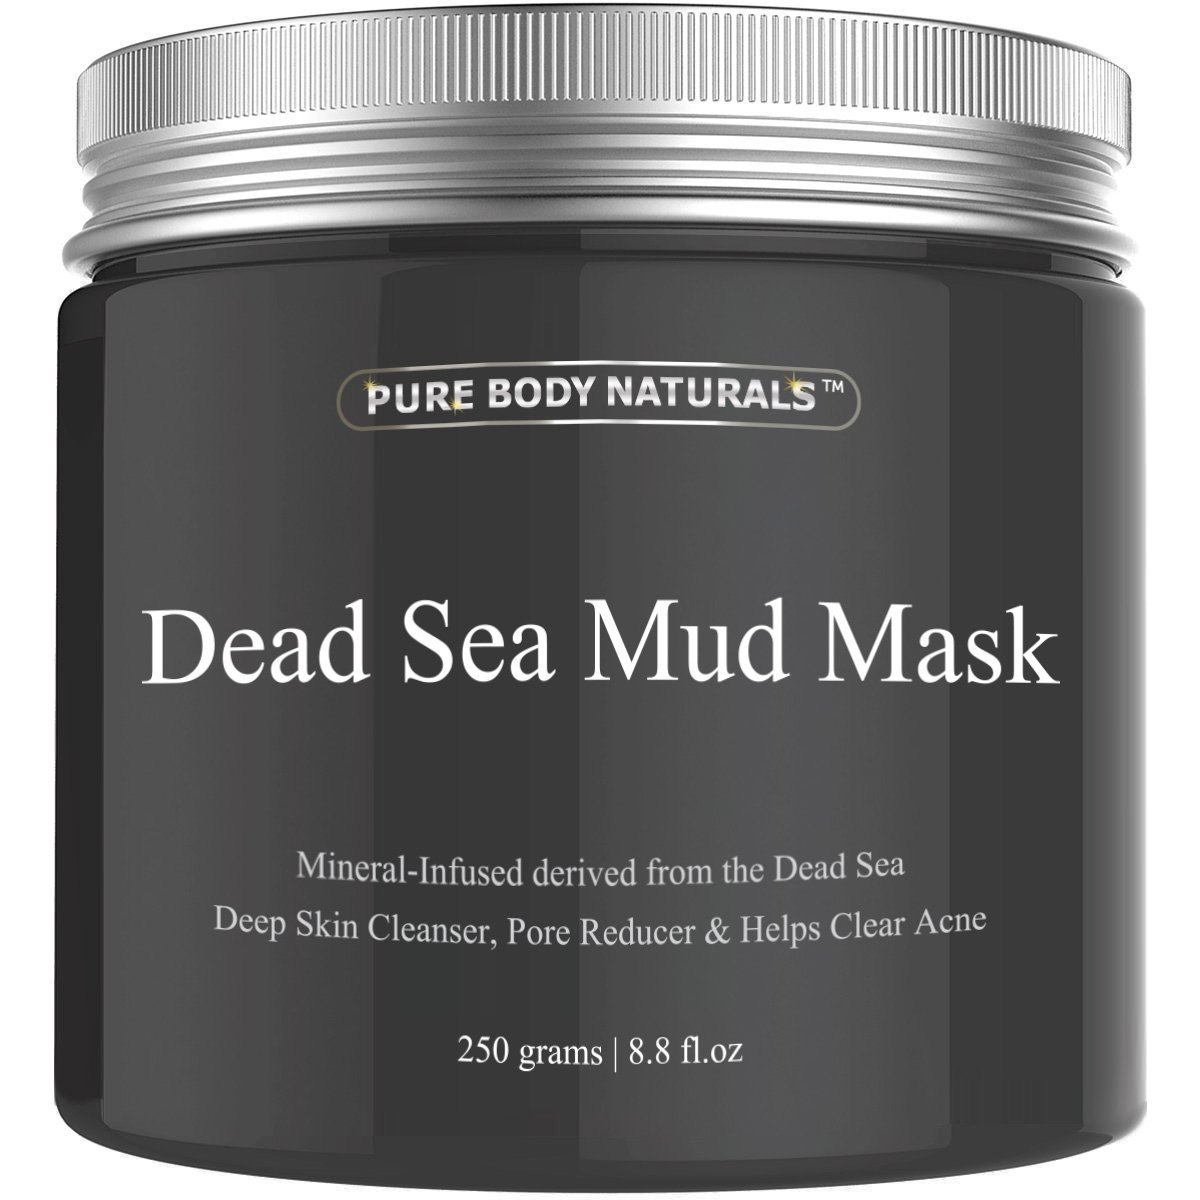 best-valentines-day-gift-ideas-for-her-2017-pure-body-naturals-beauty-dead-sea-mud-mask